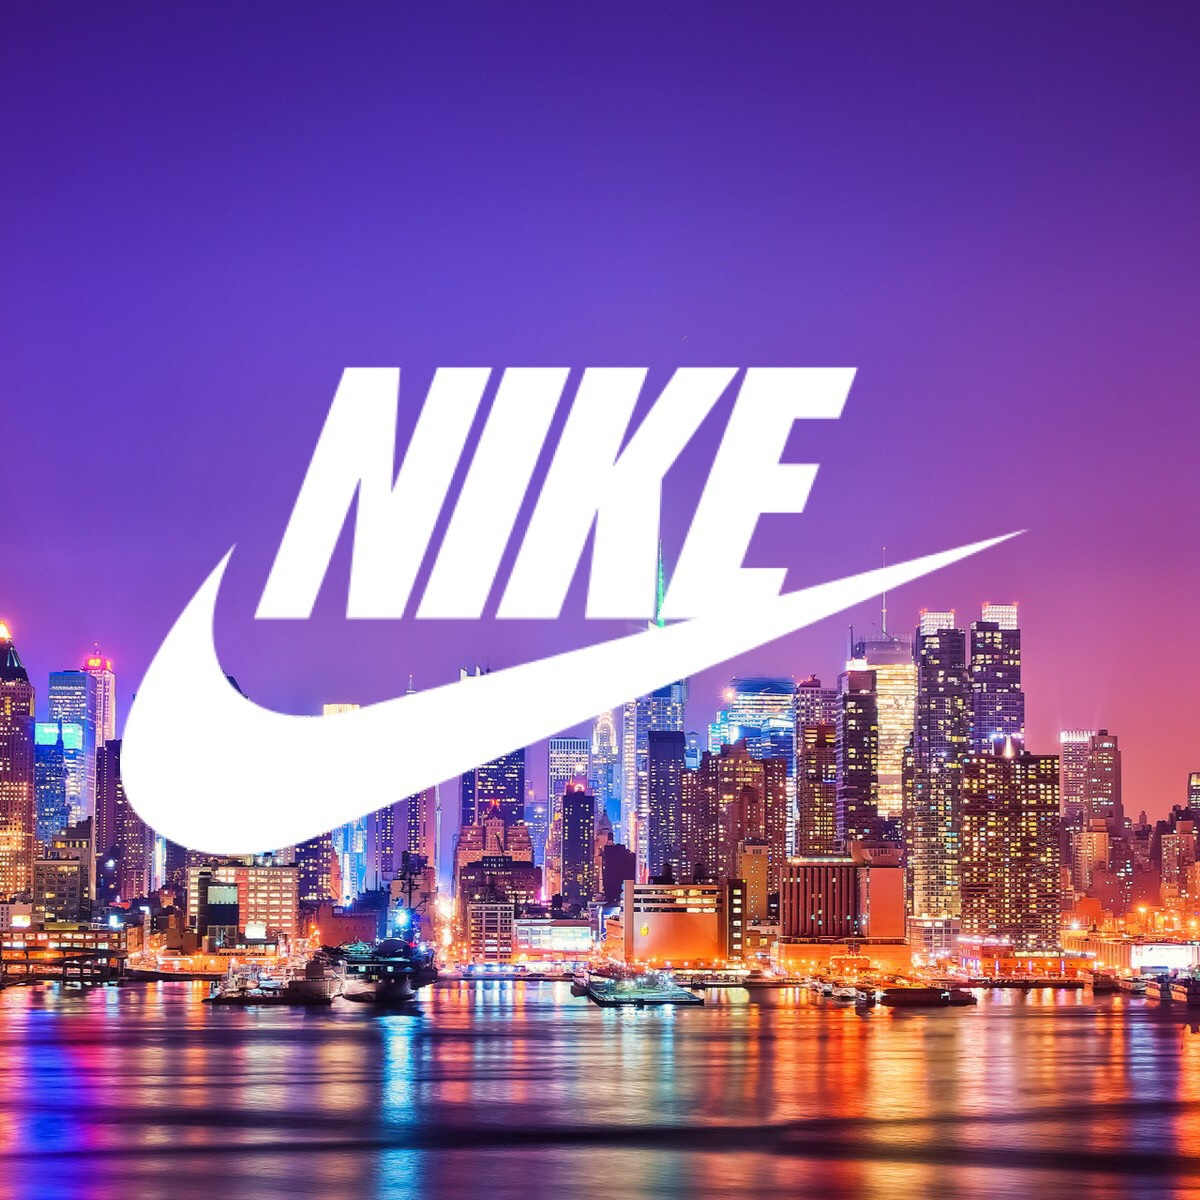 Nike Just Do It Nikecom  NIKE Inc Inspiration and